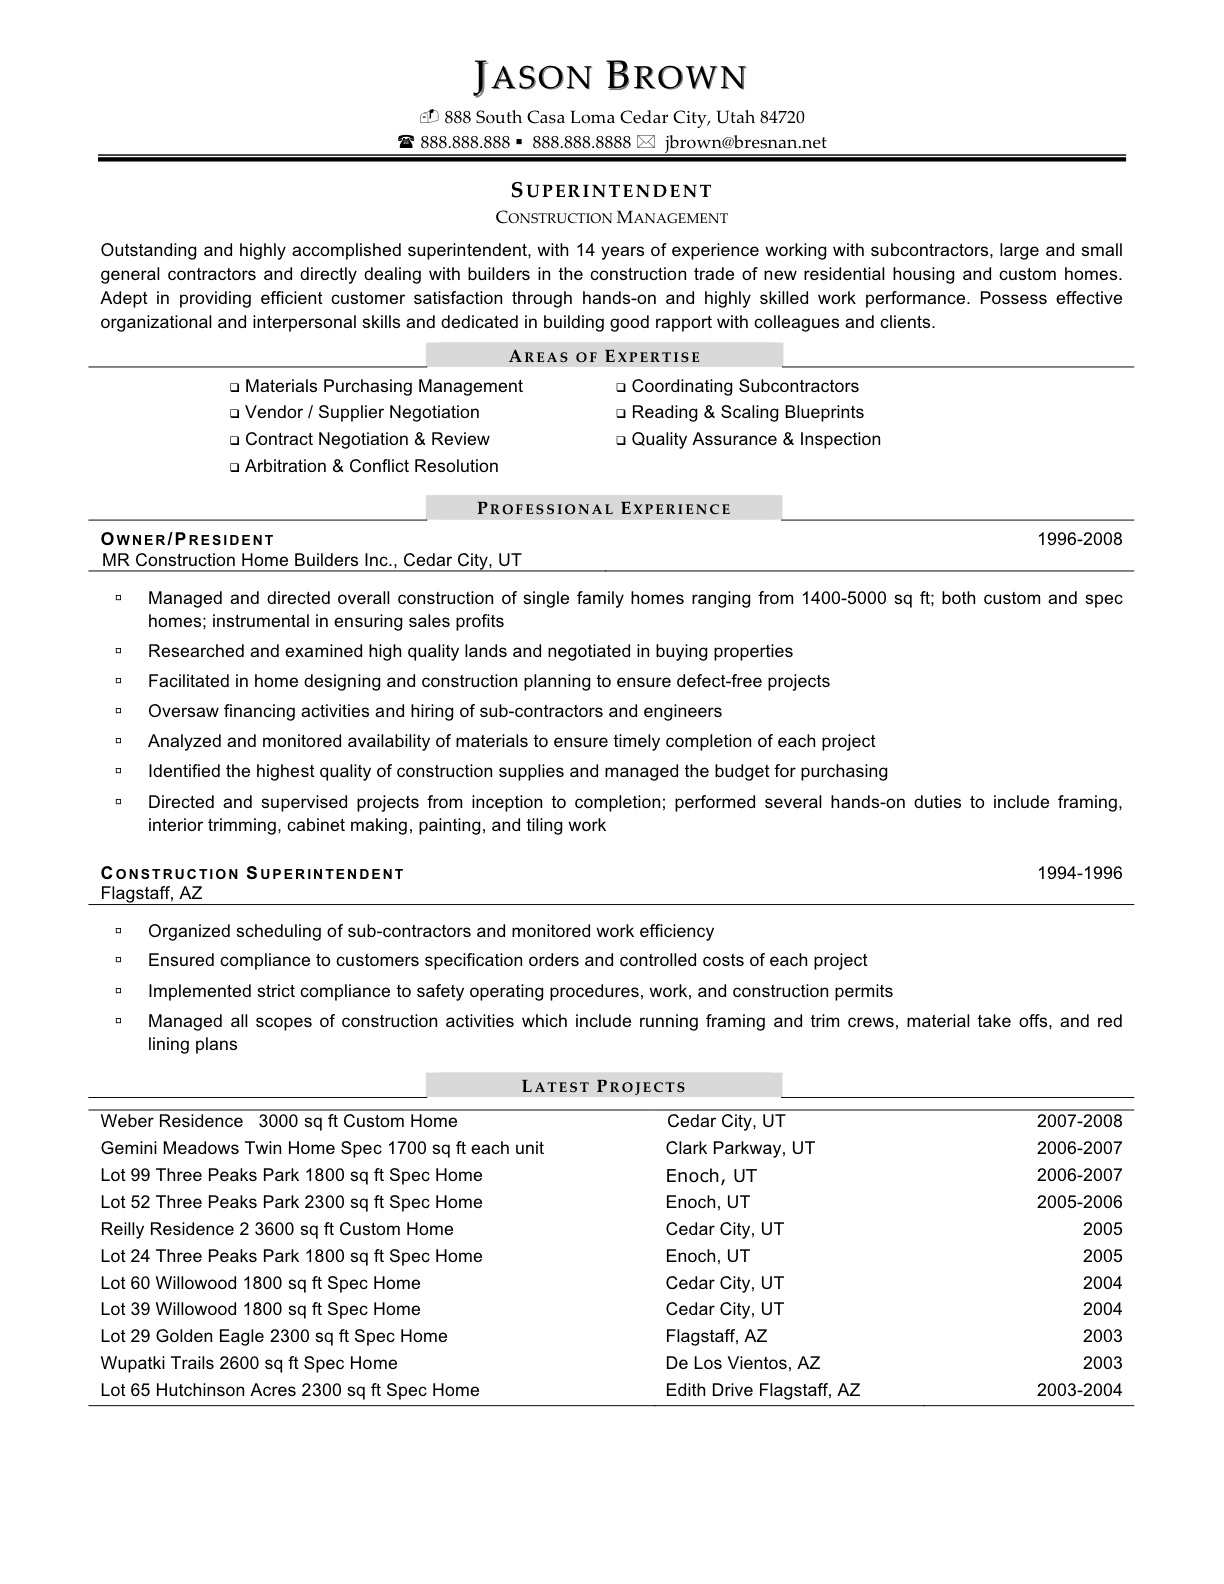 construction management resume templates resume template builder